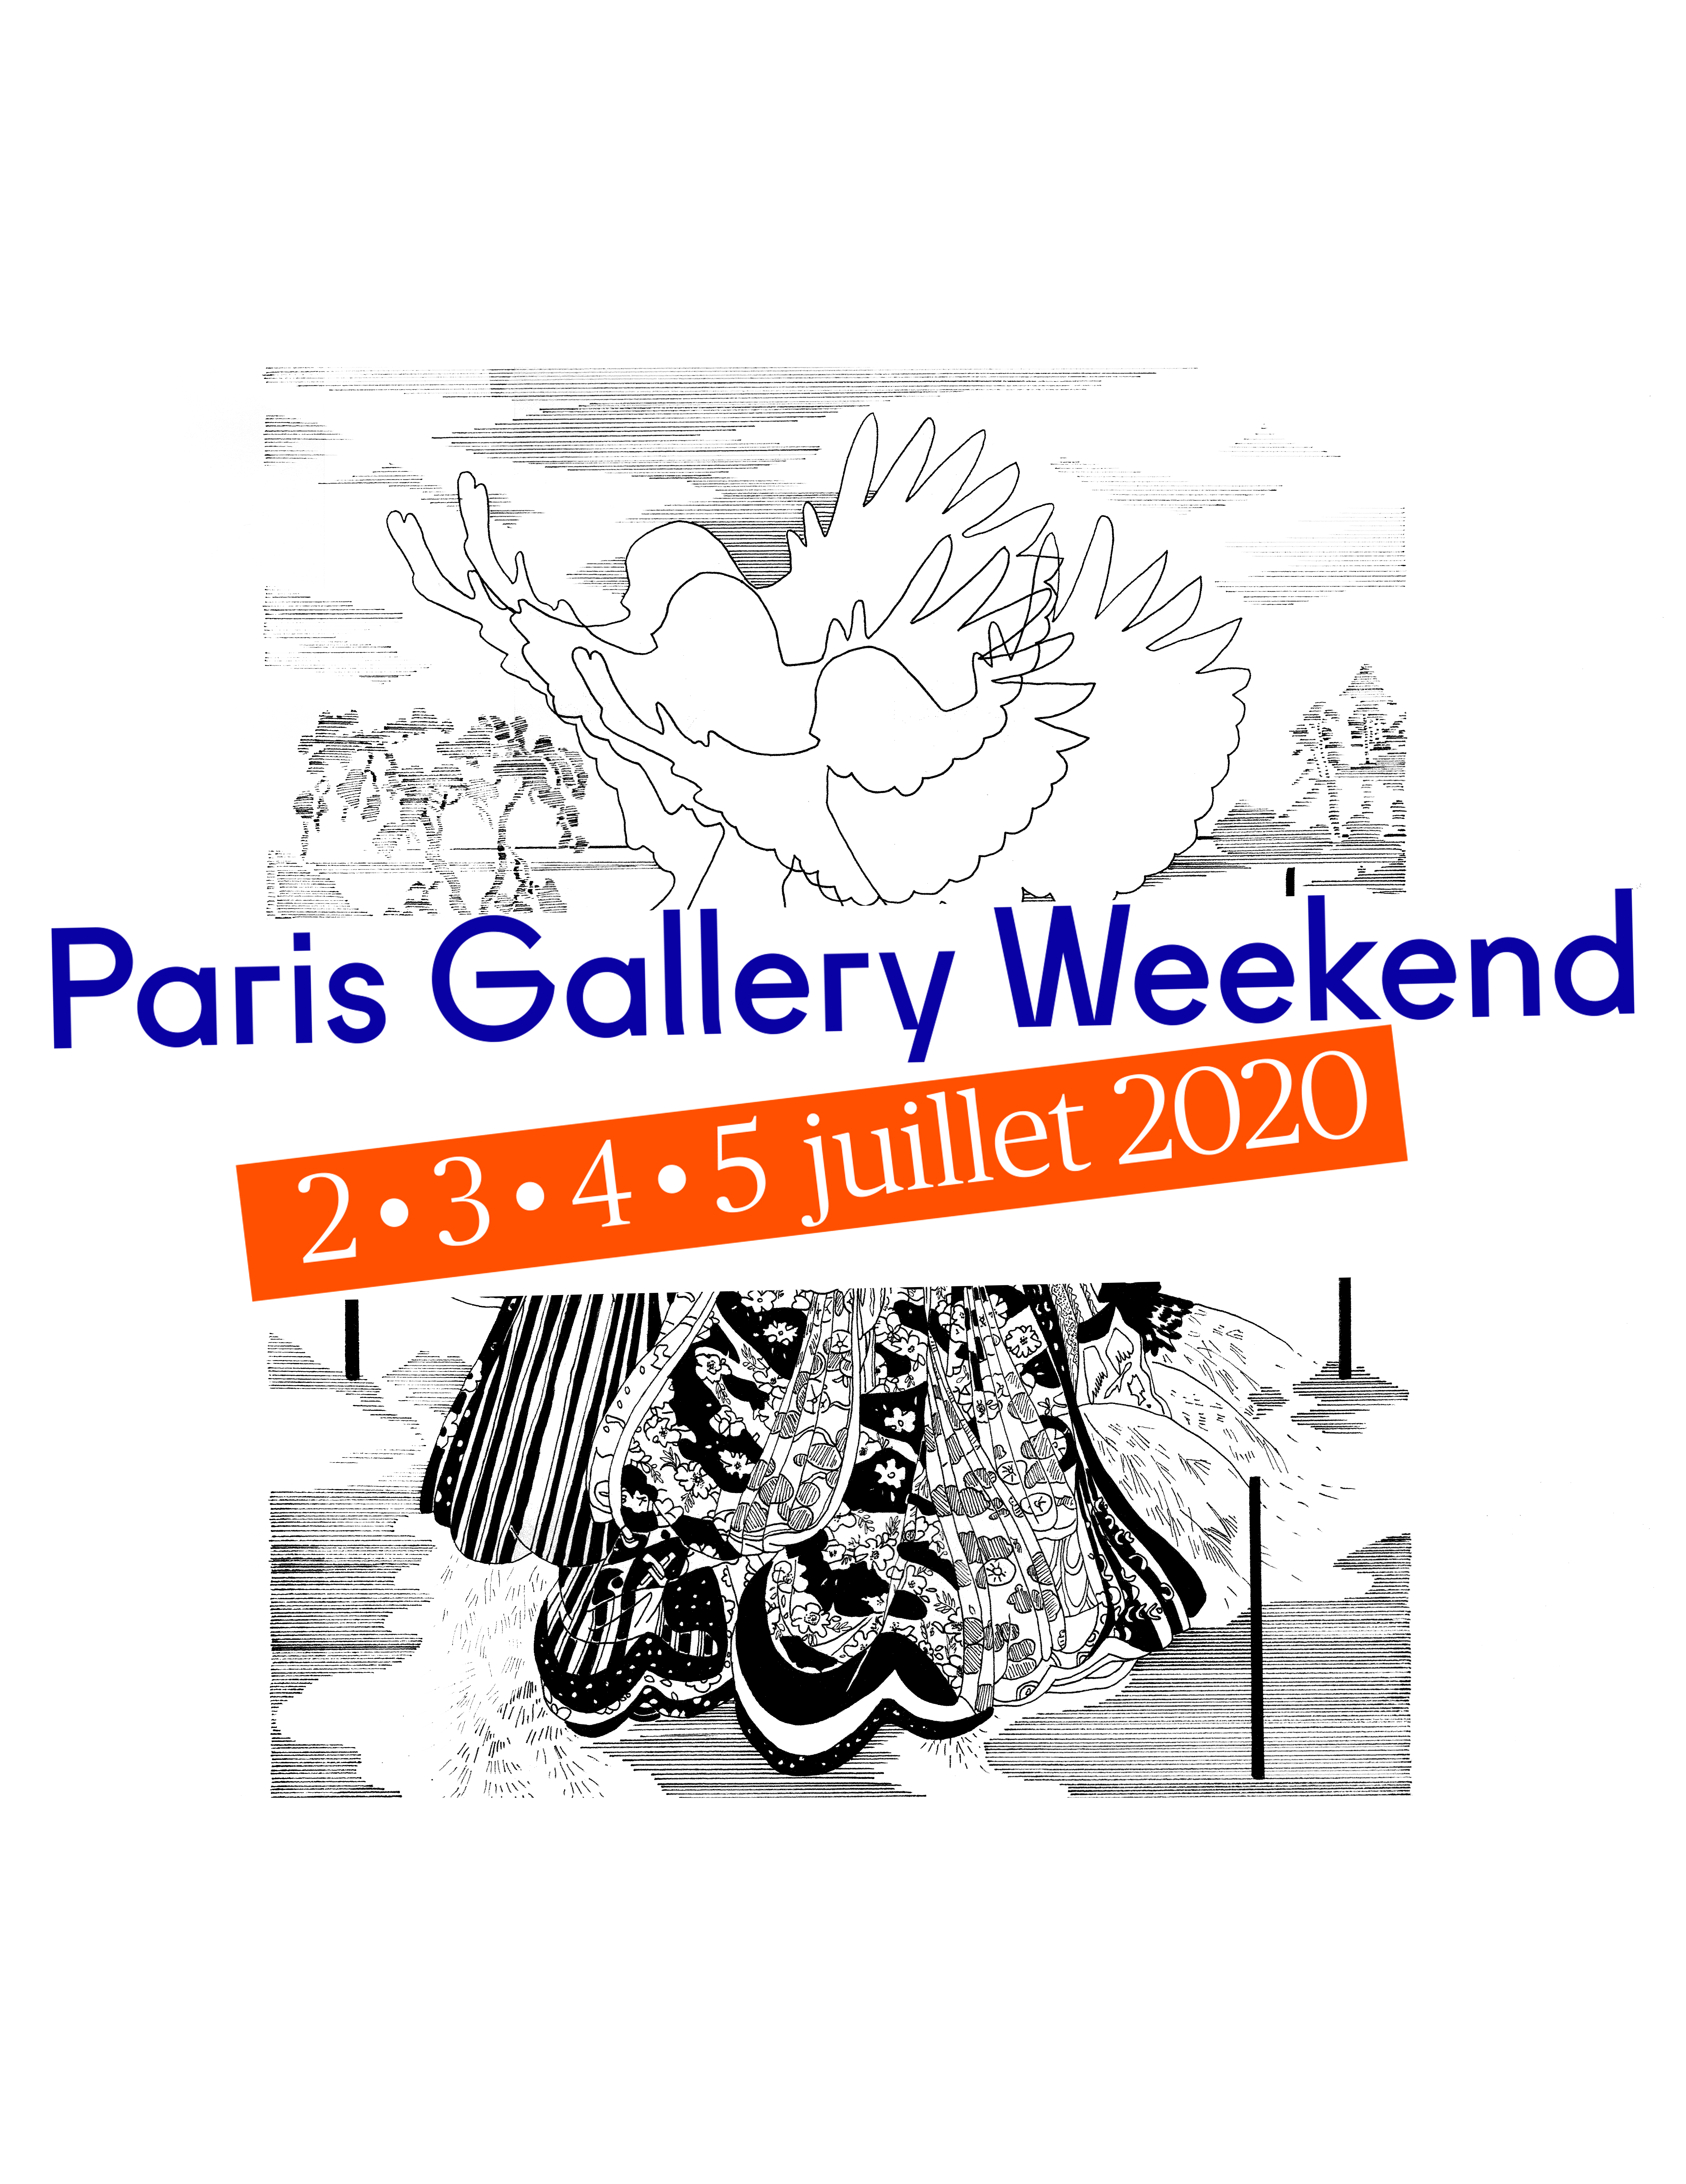 Paris Gallery Weekend